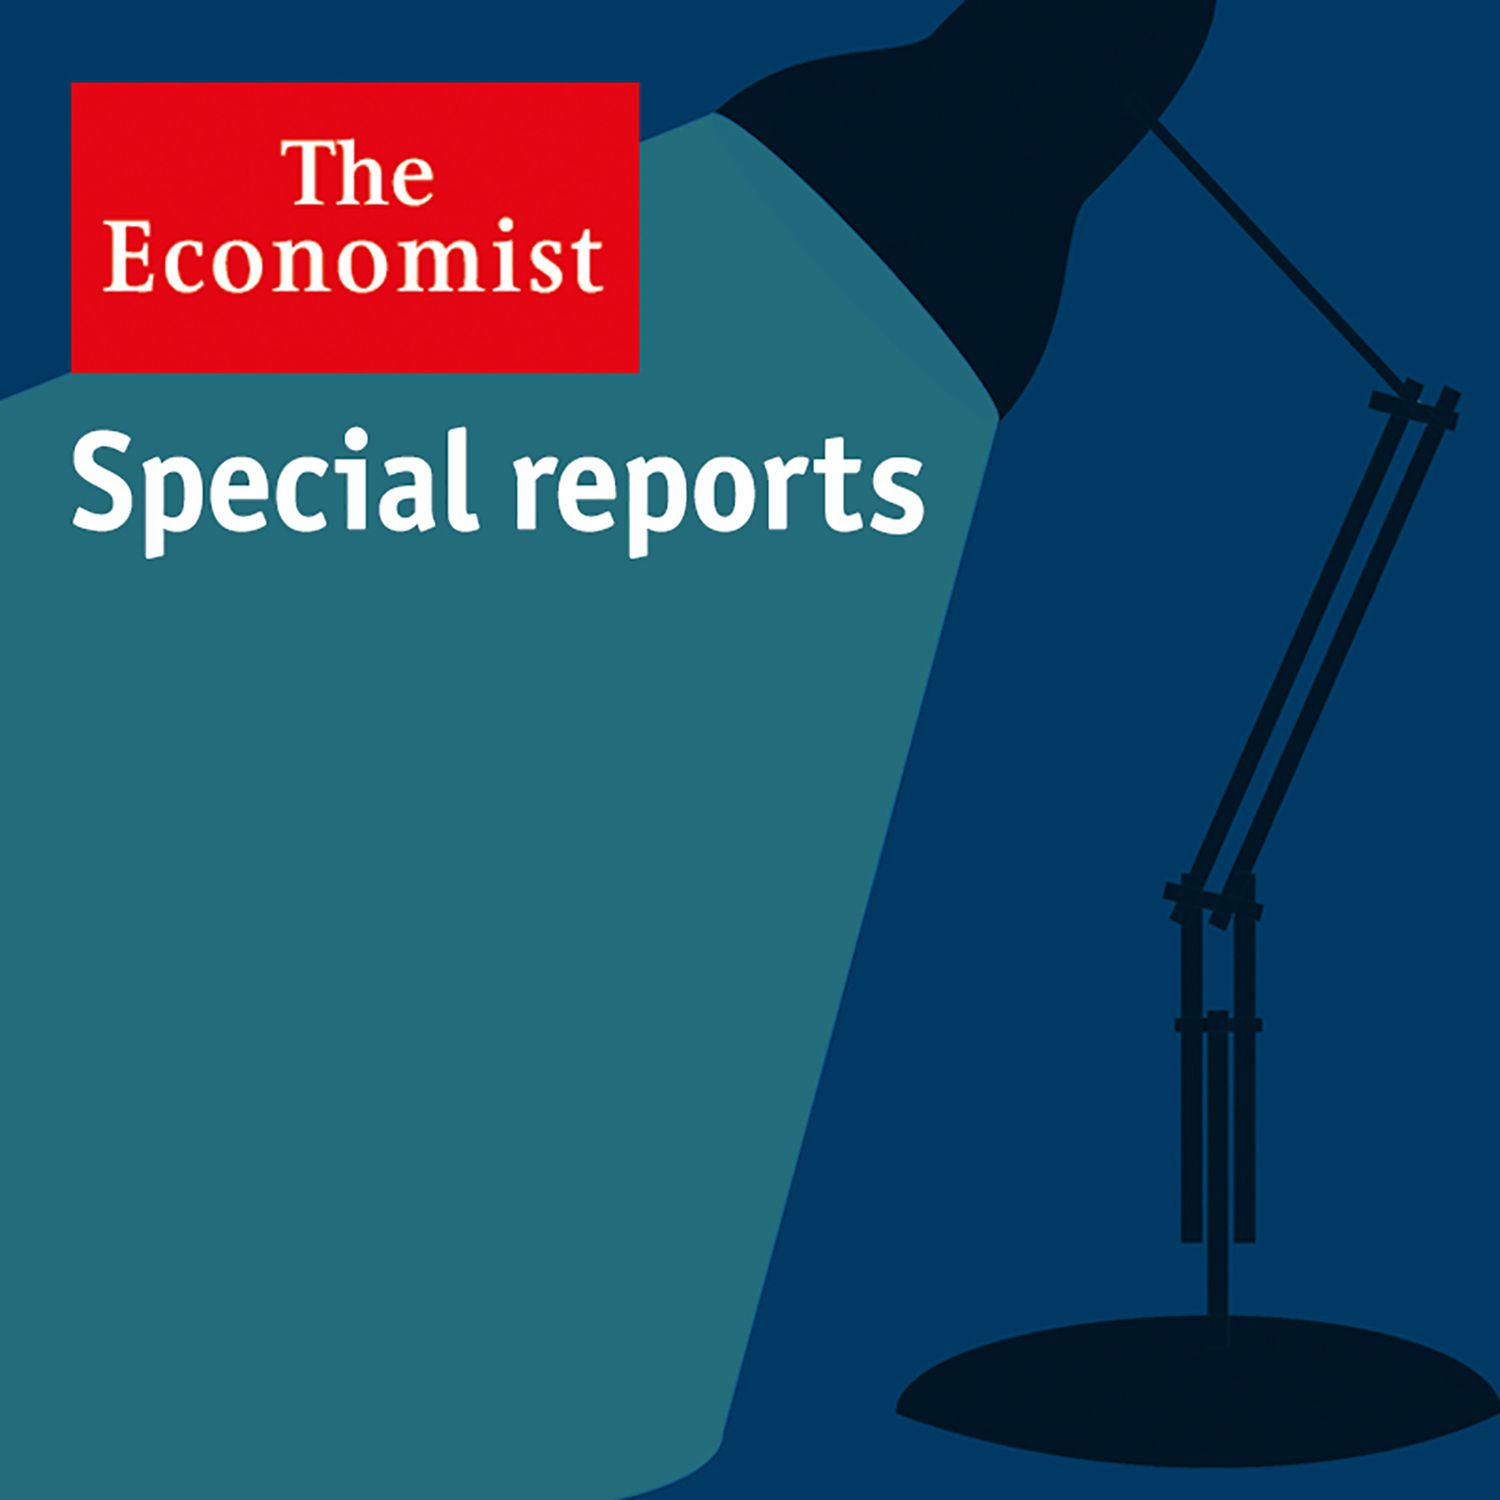 an analysis of the topic of the economist The economics section provides information on financing and the economic impact of transportation policy.